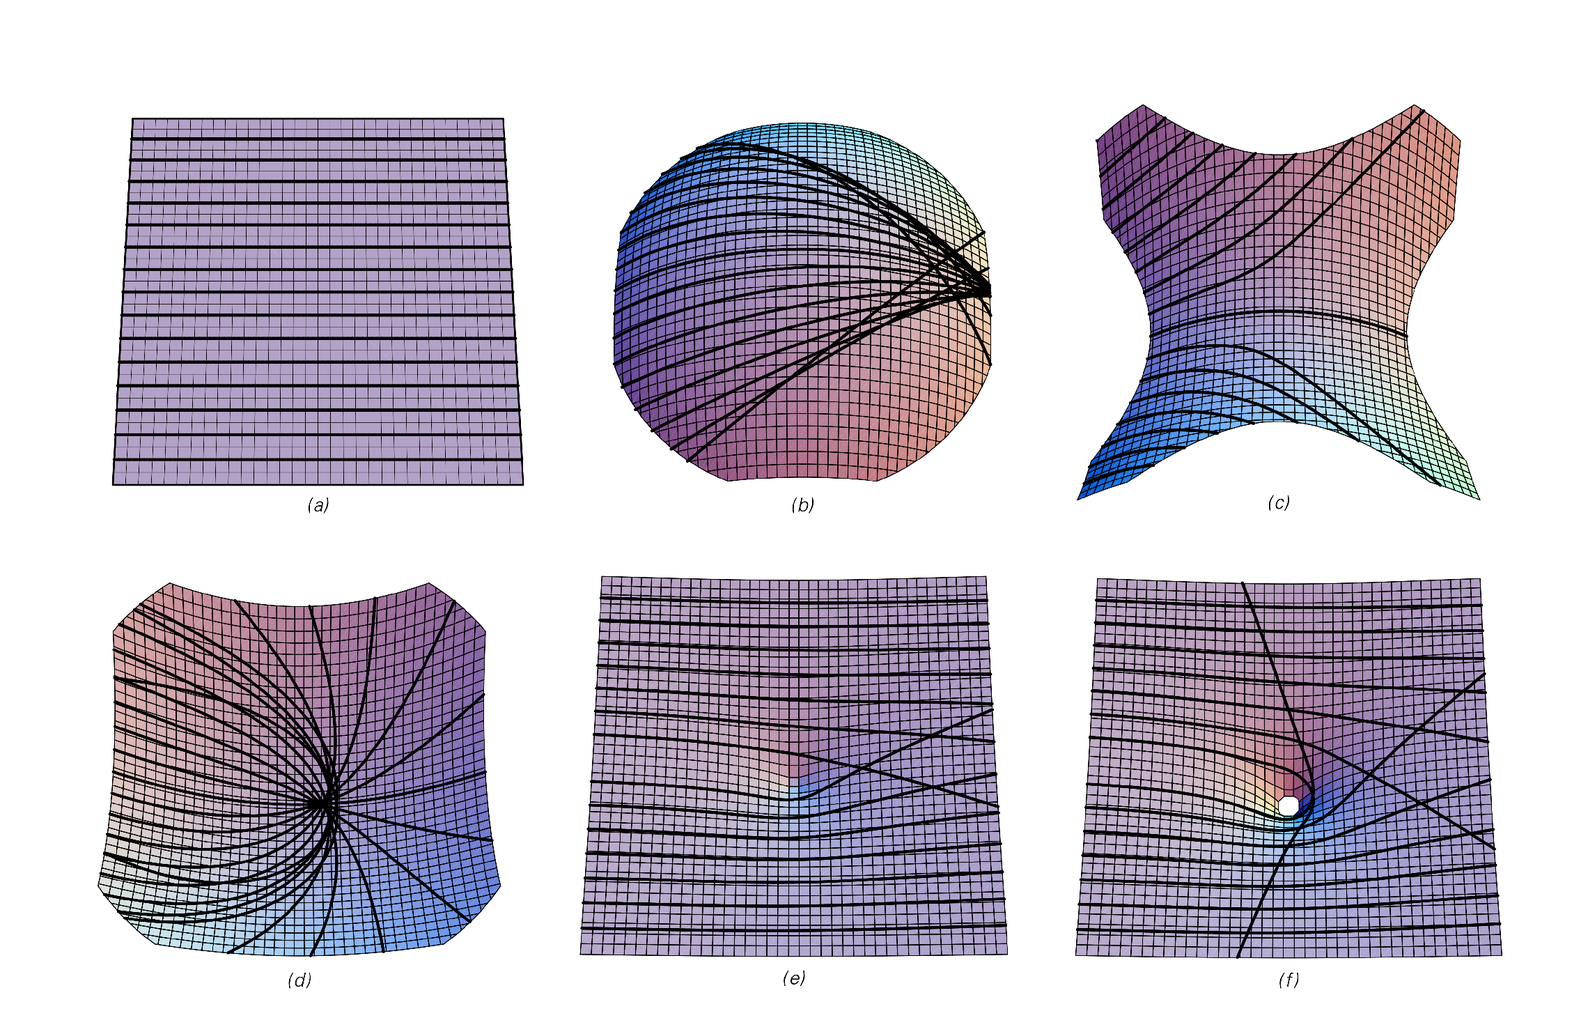 The effect of curvature in space on paths taken by objects